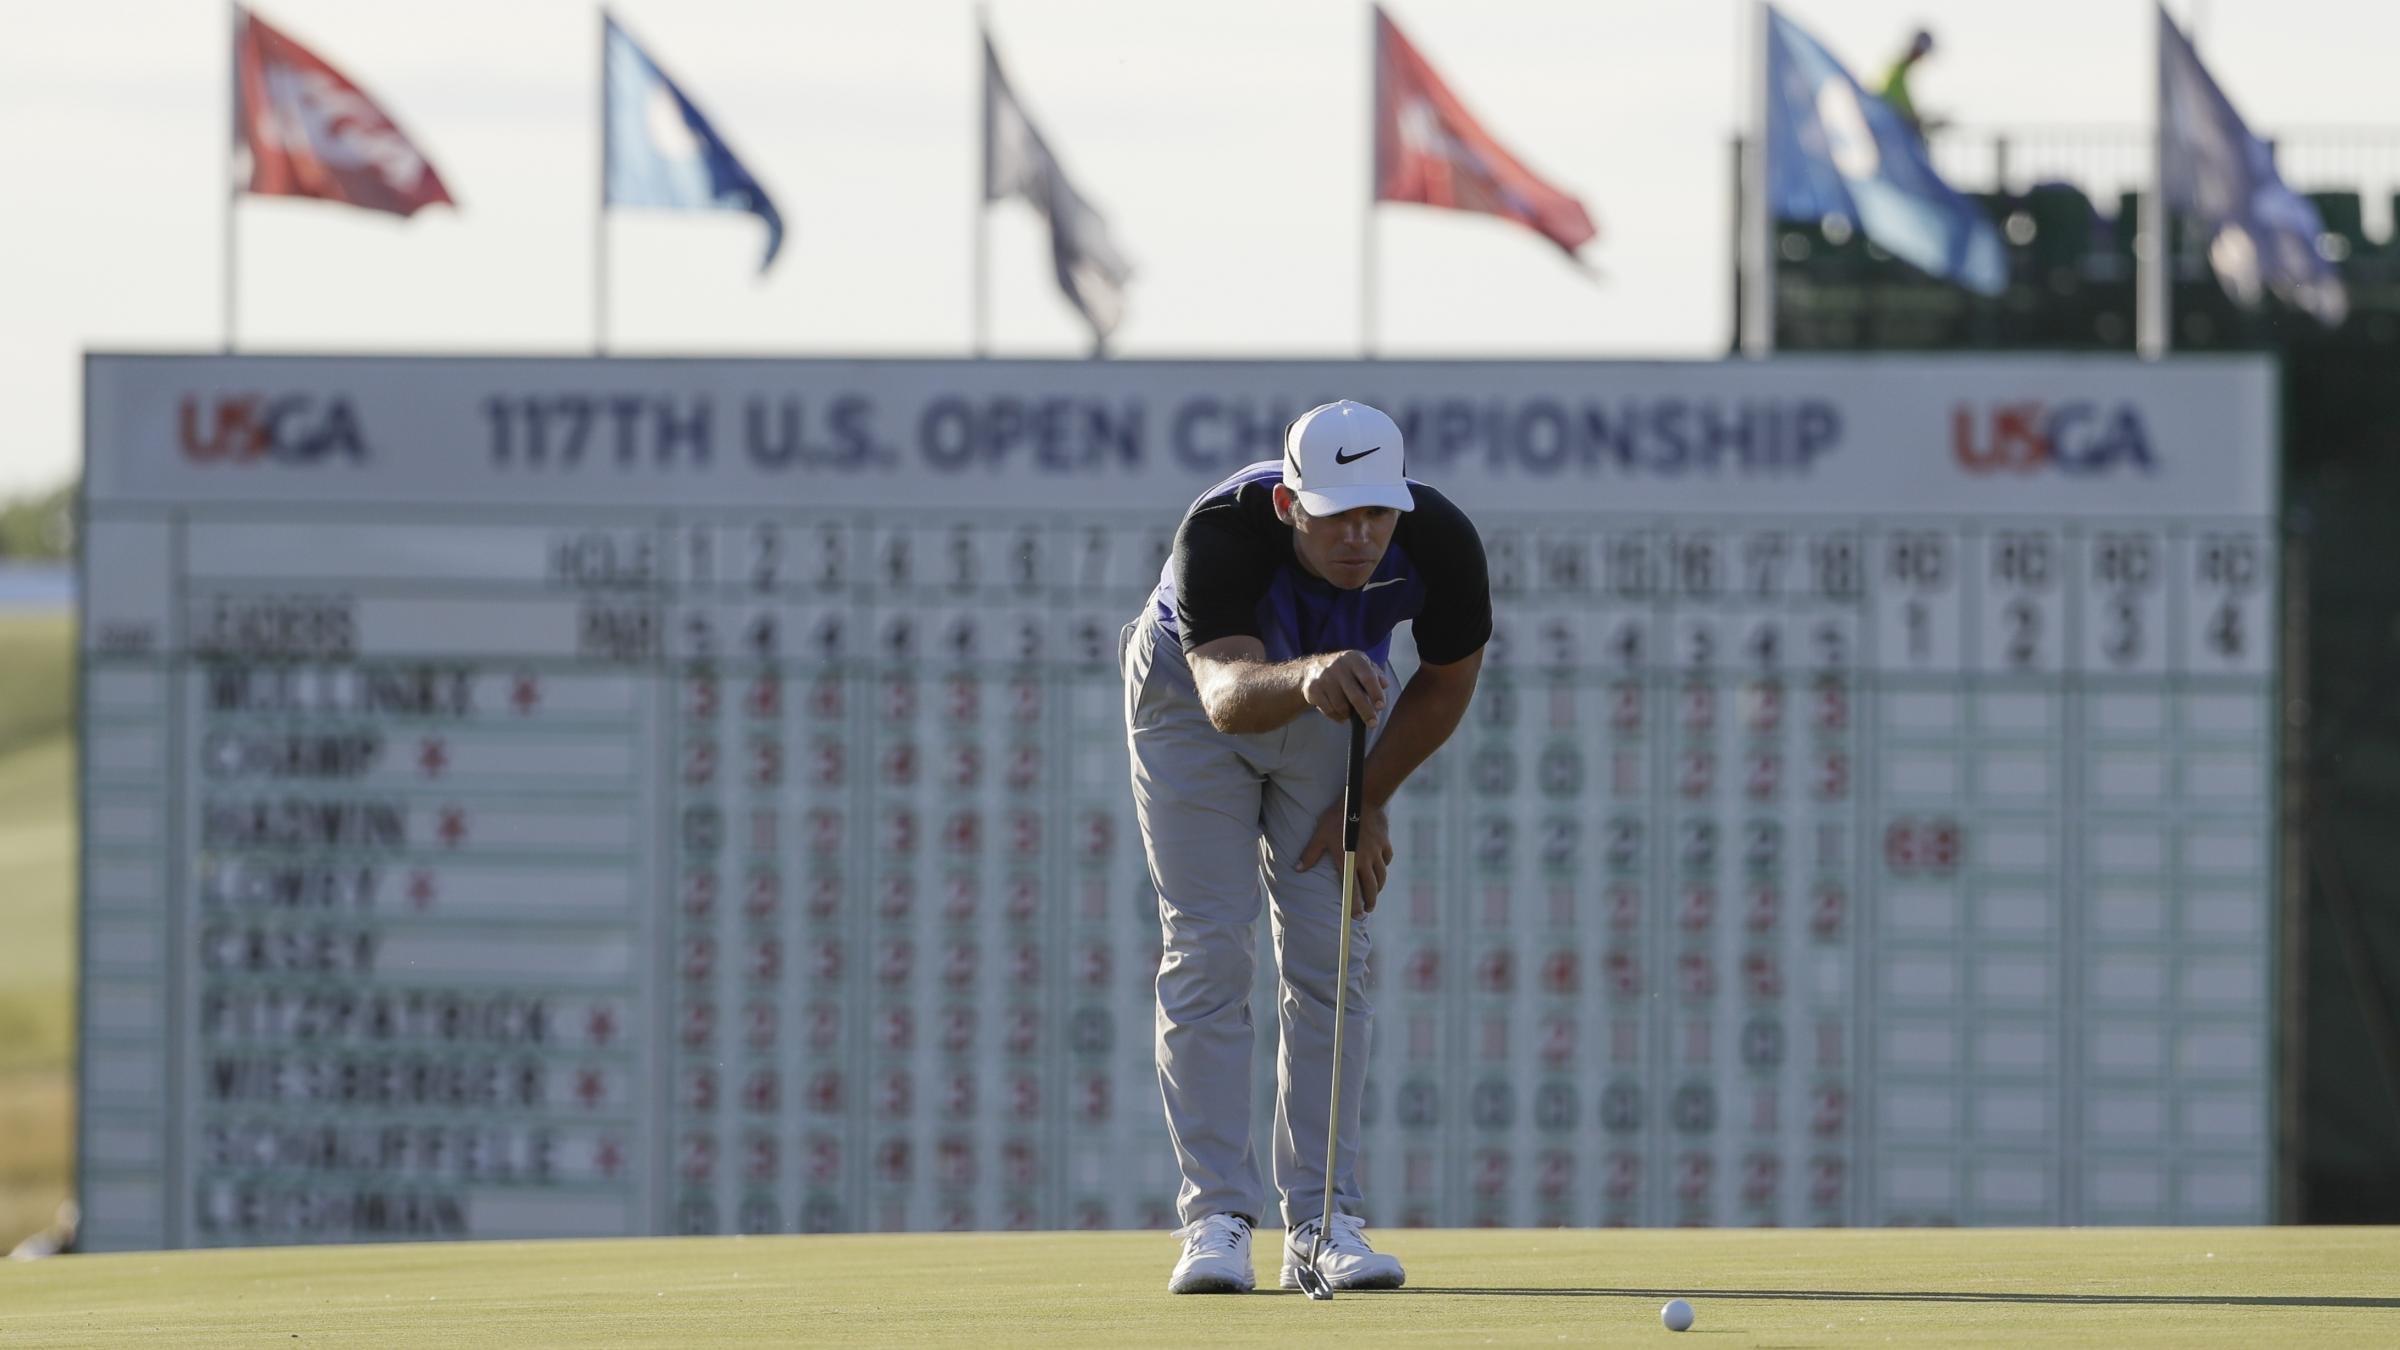 McIlroy, Day try to make up ground at US Open